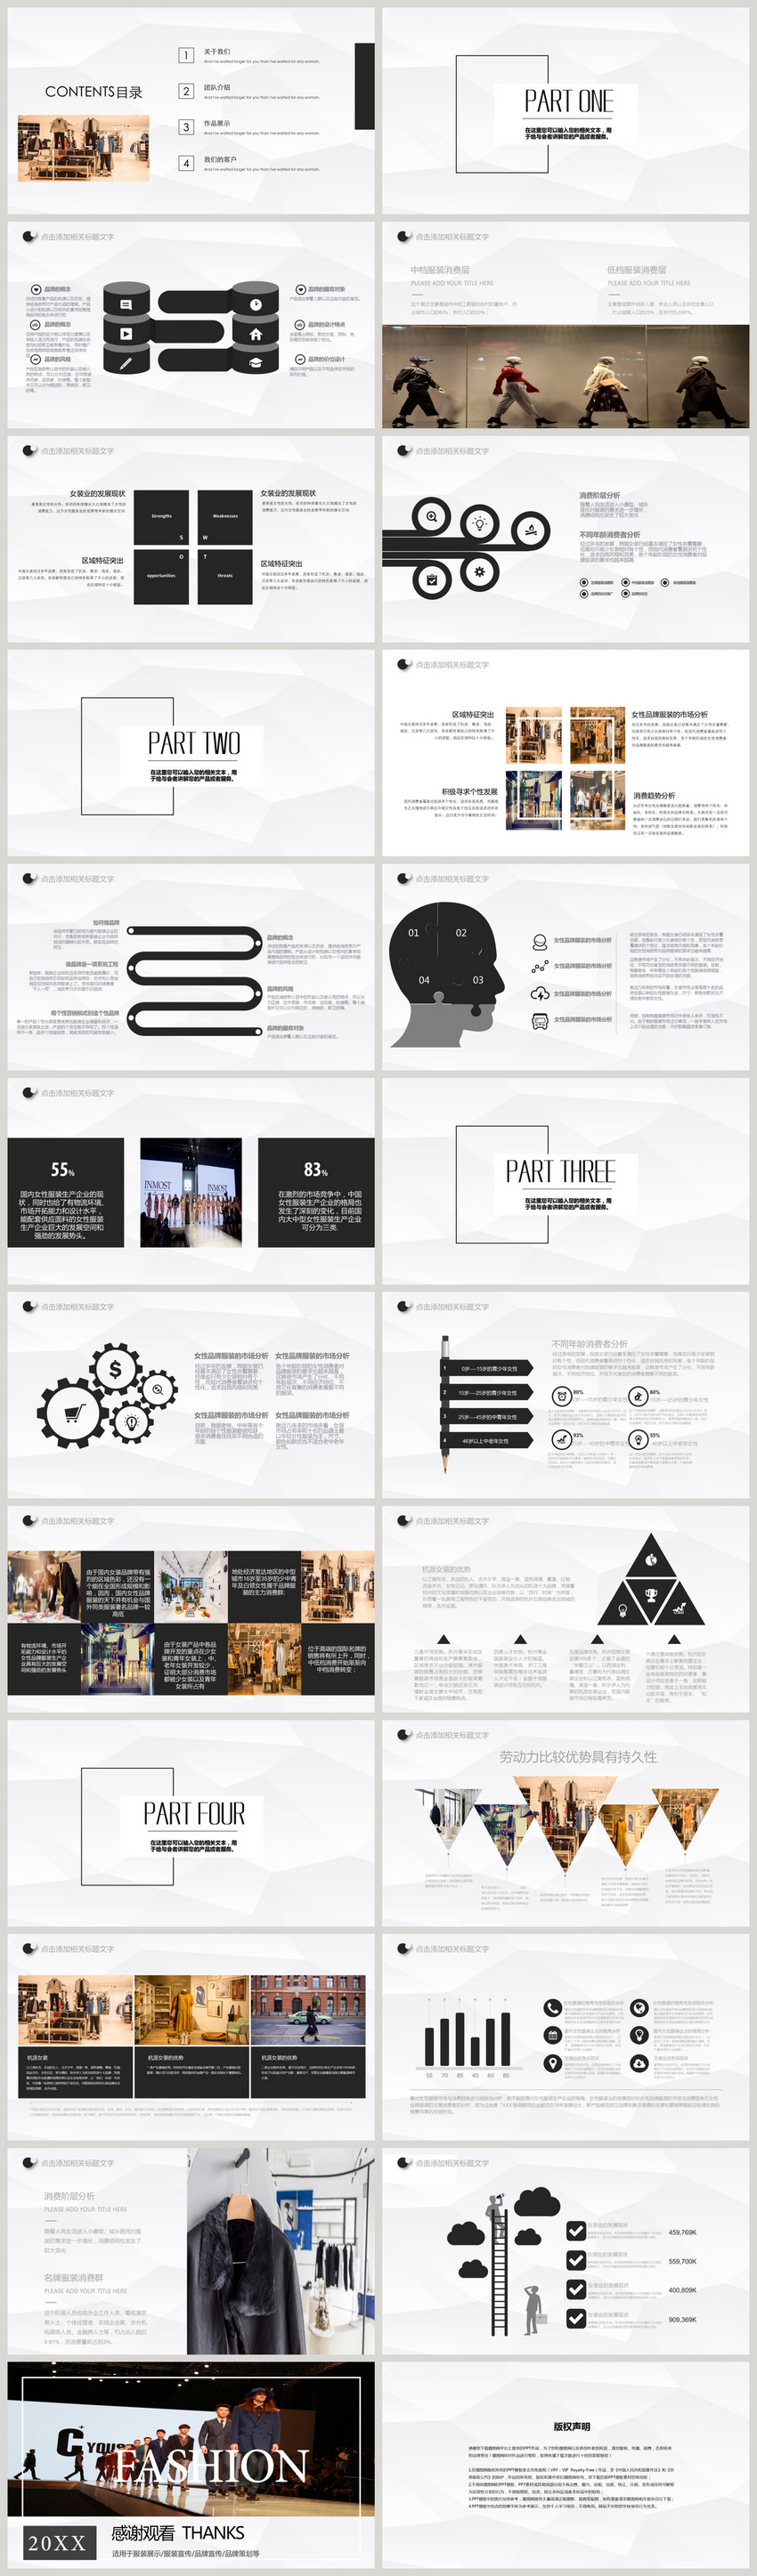 Fashion brand clothing conference ppt template powerpoint